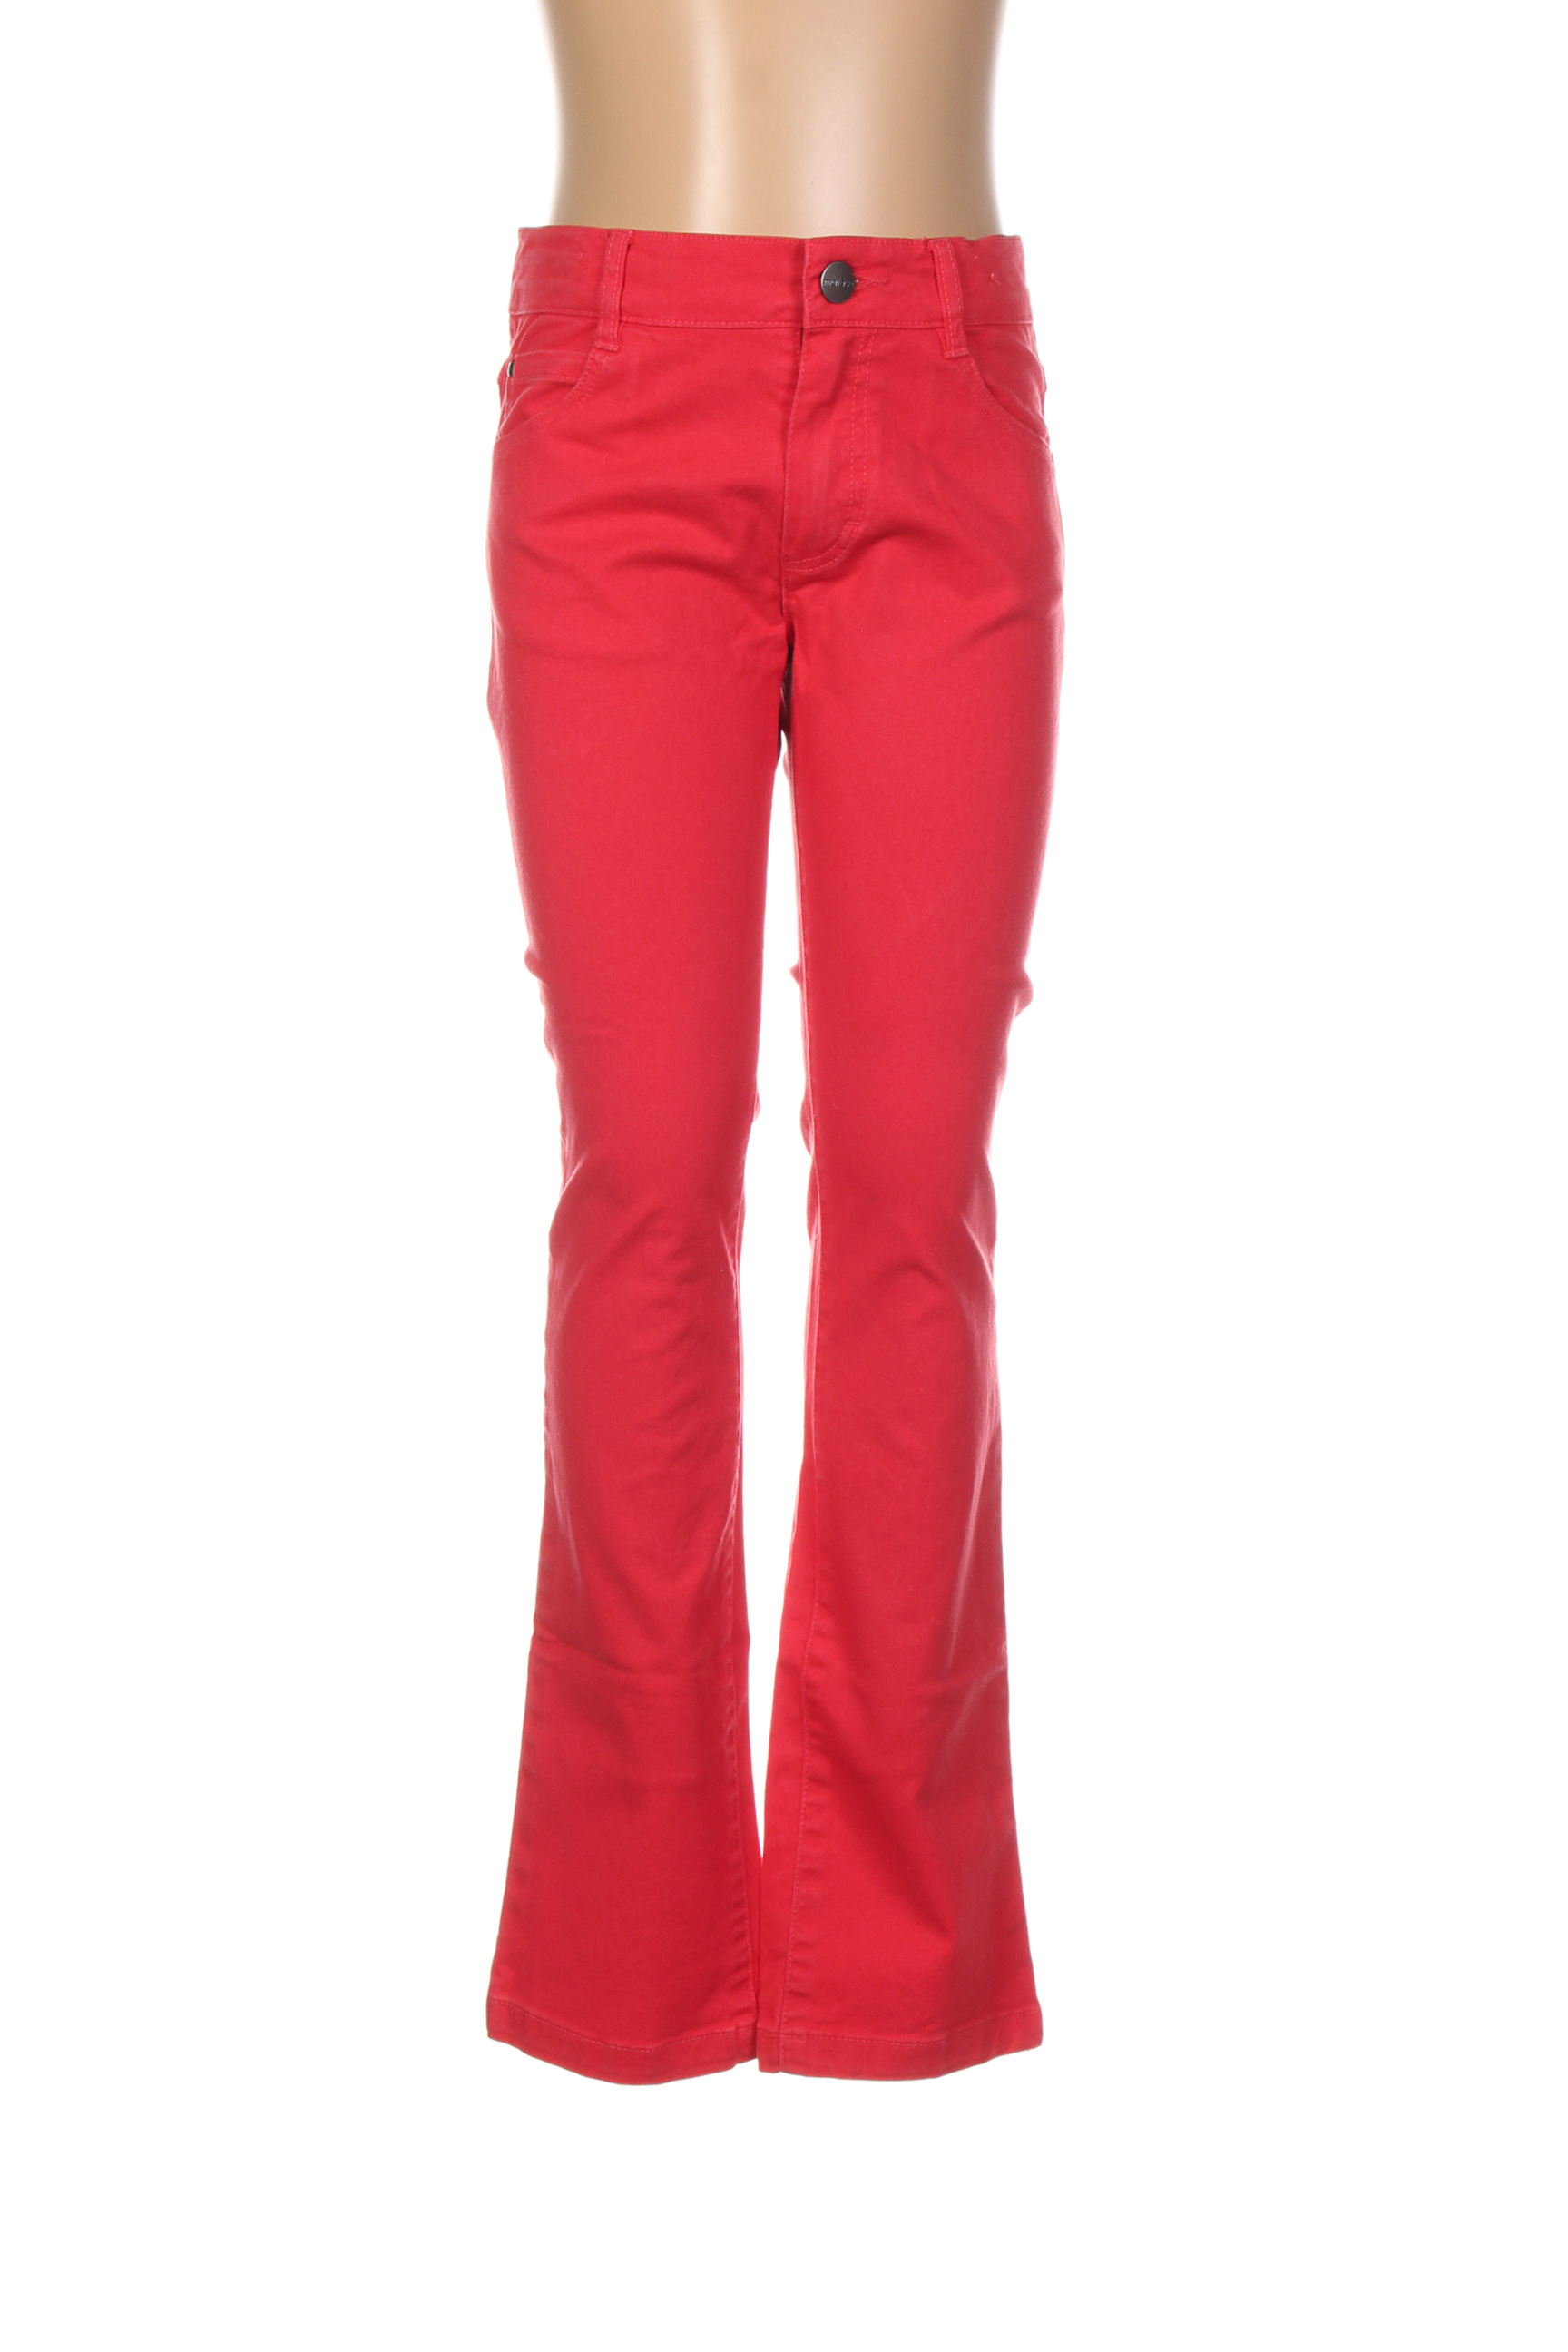 Jeans coupe droite fille Marese rouge taille : 4 A 23 FR (FR)